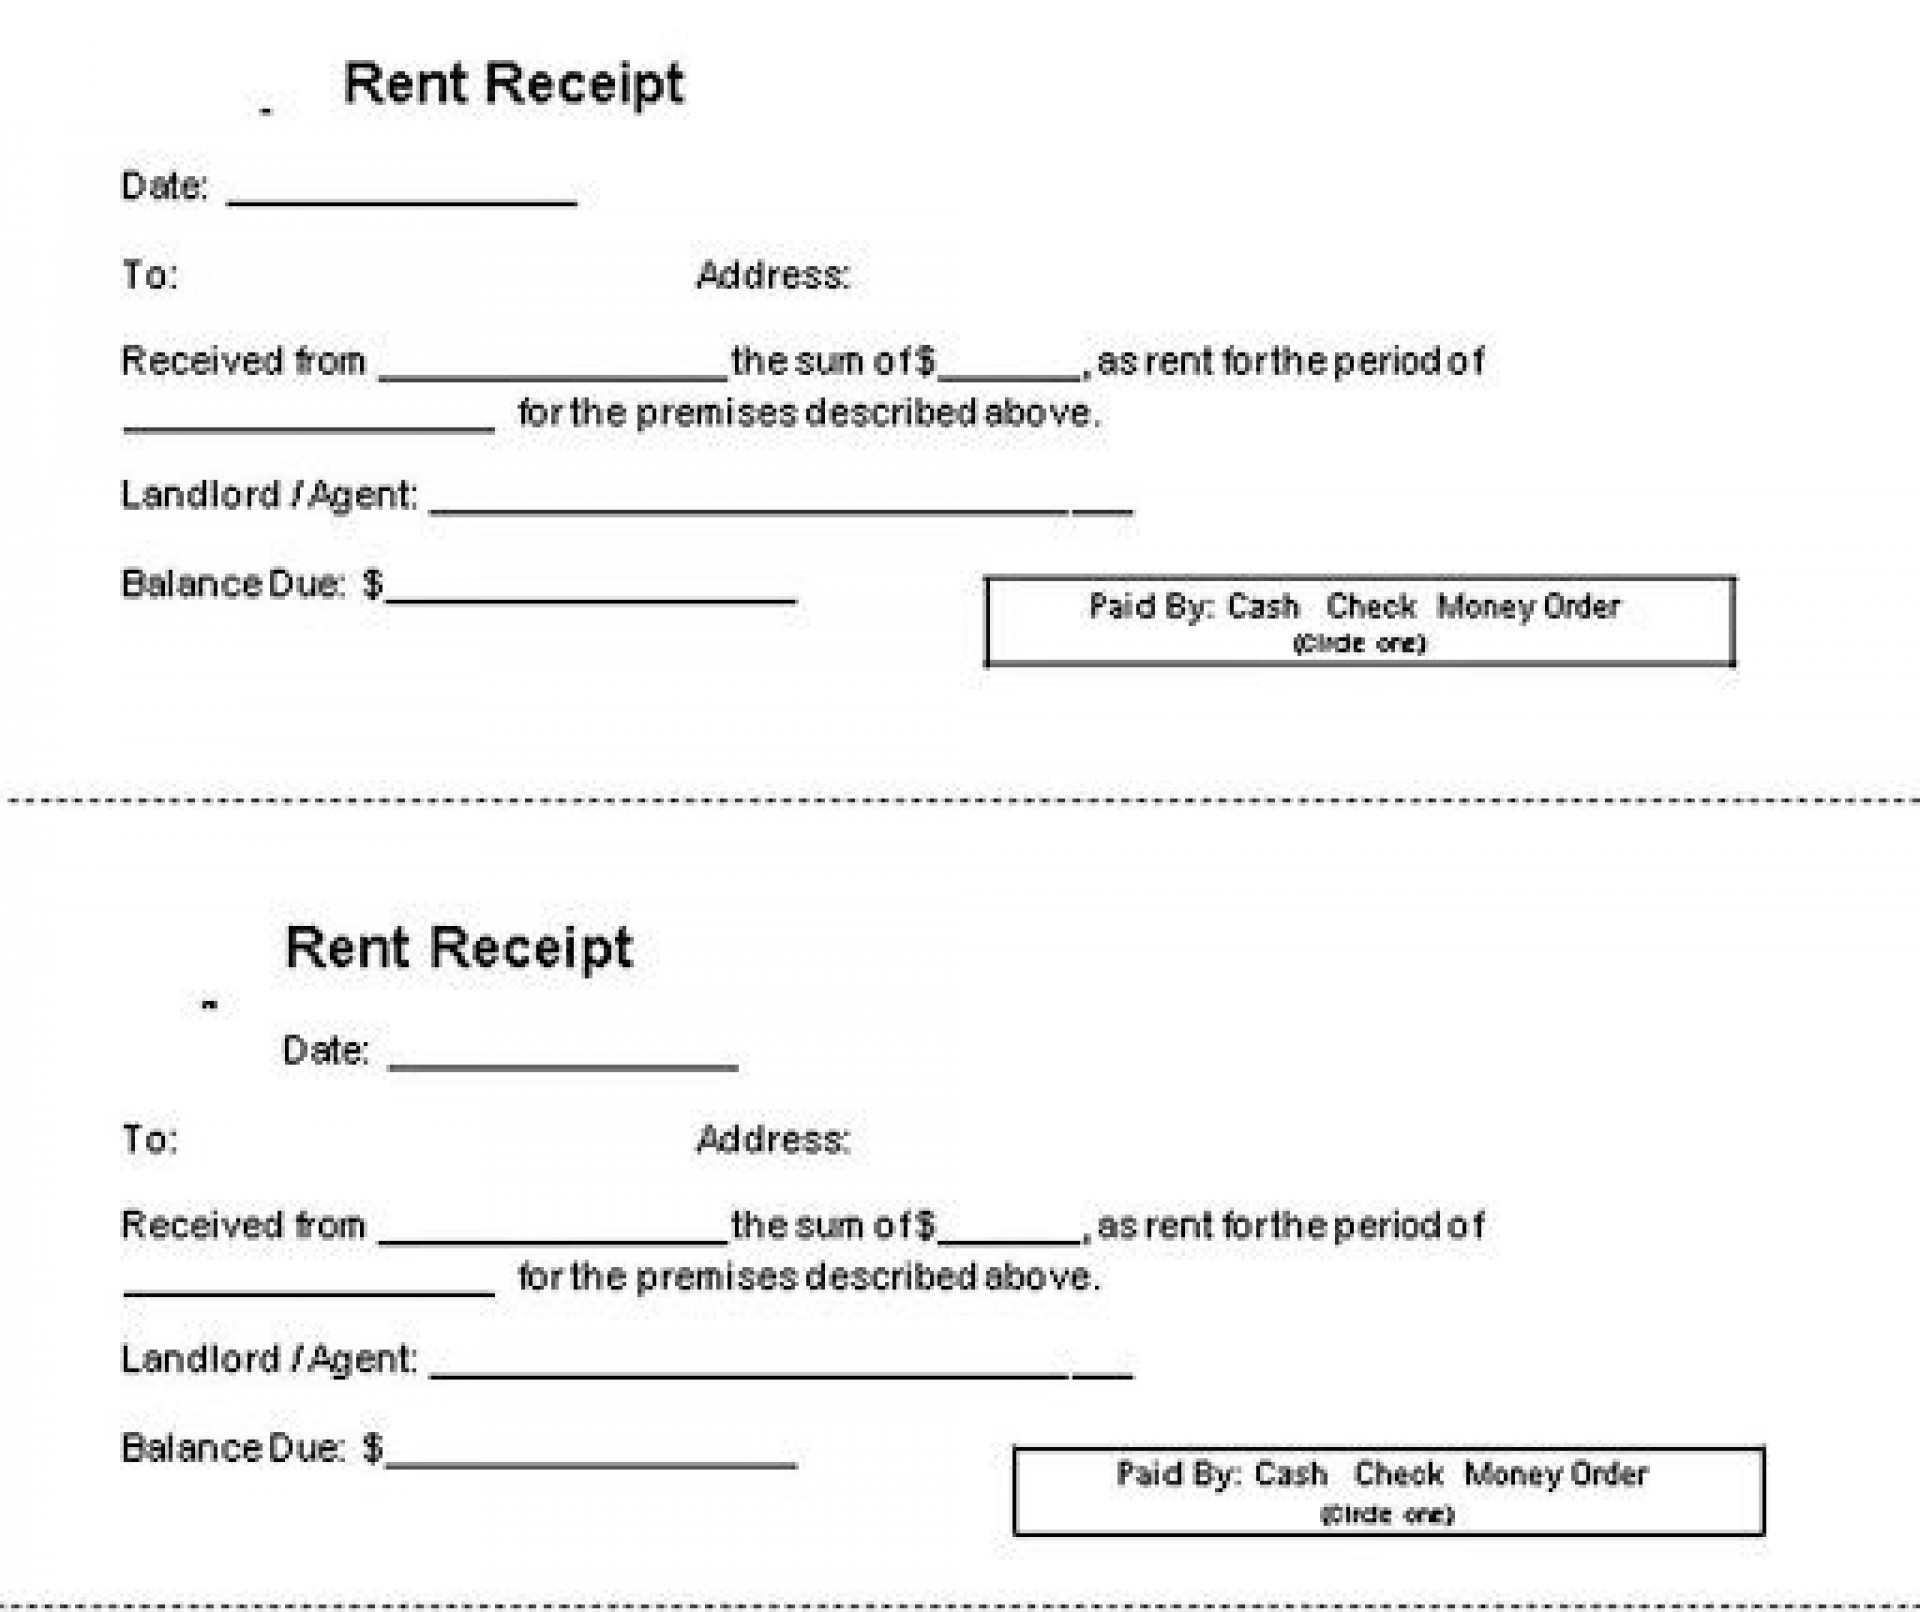 010 Magnificent House Rent Receipt Sample Doc Concept  Template Word Document Free Download Format For Income Tax1920